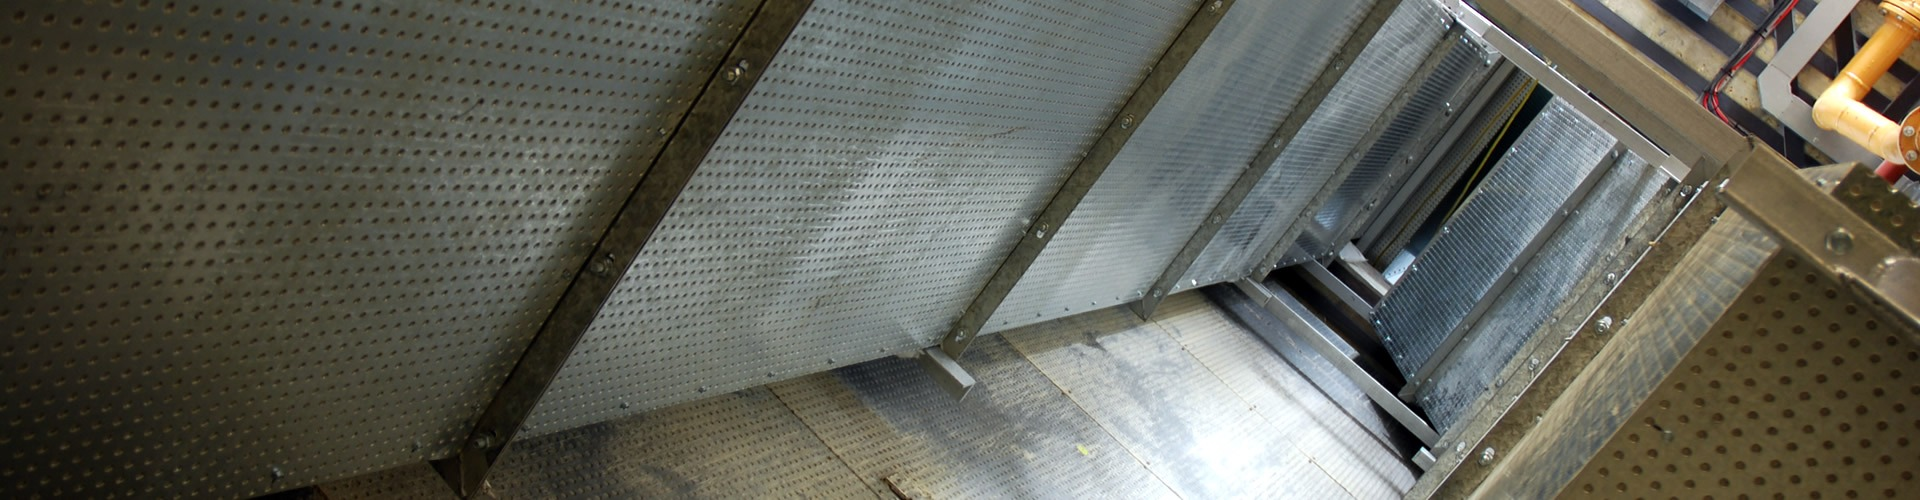 Blast Rated Ductwork & Baffles